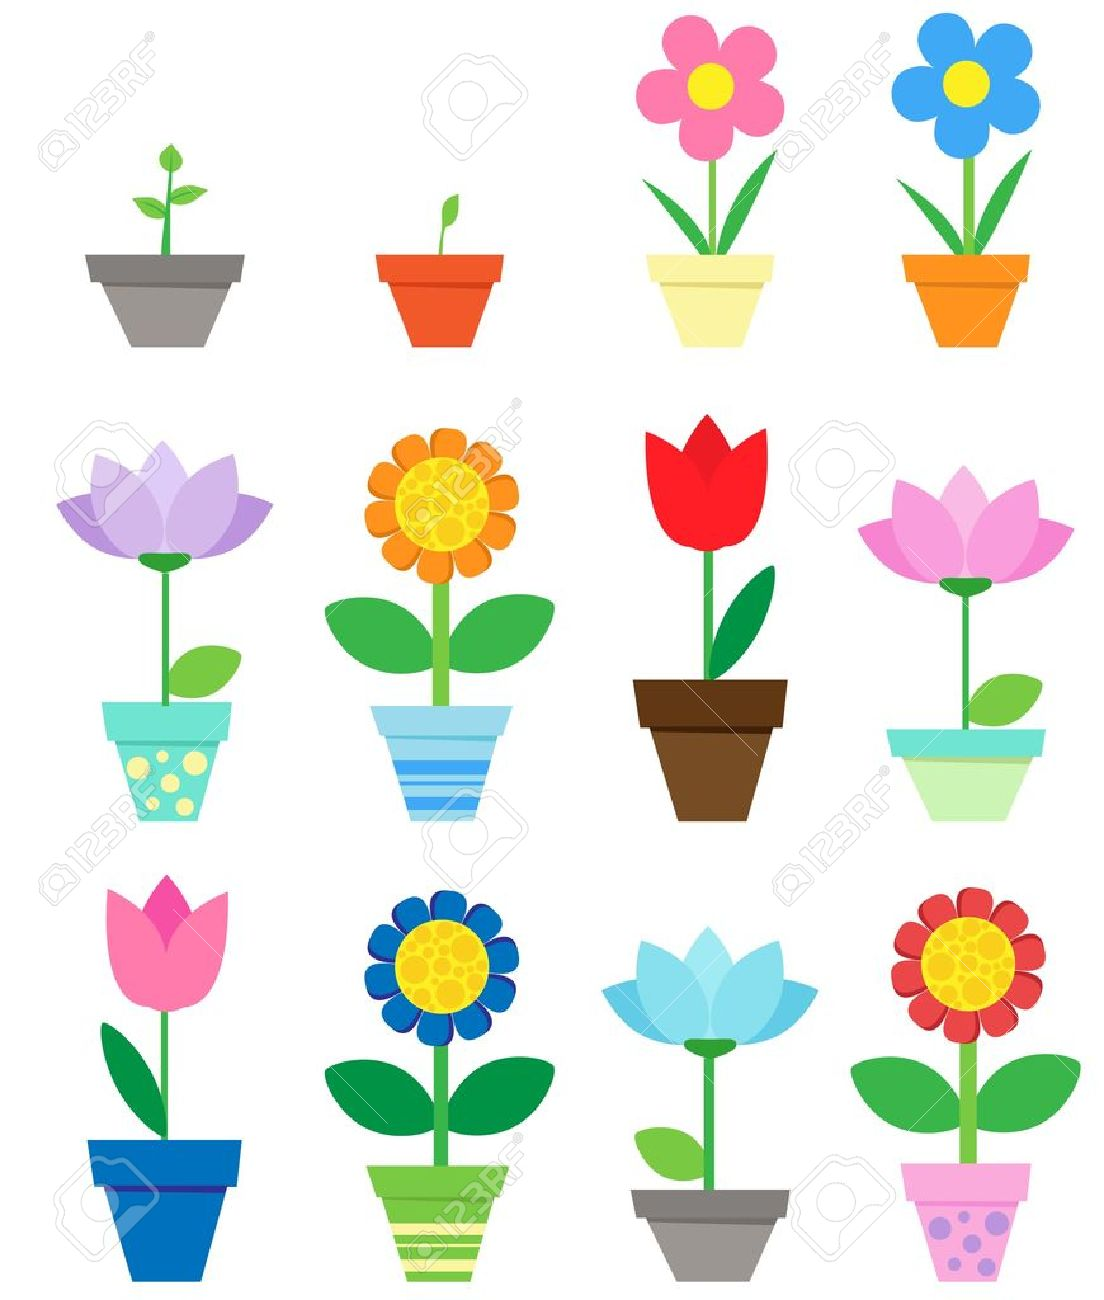 5,206 Flower Vase Isolated Cliparts, Stock Vector And Royalty Free ...